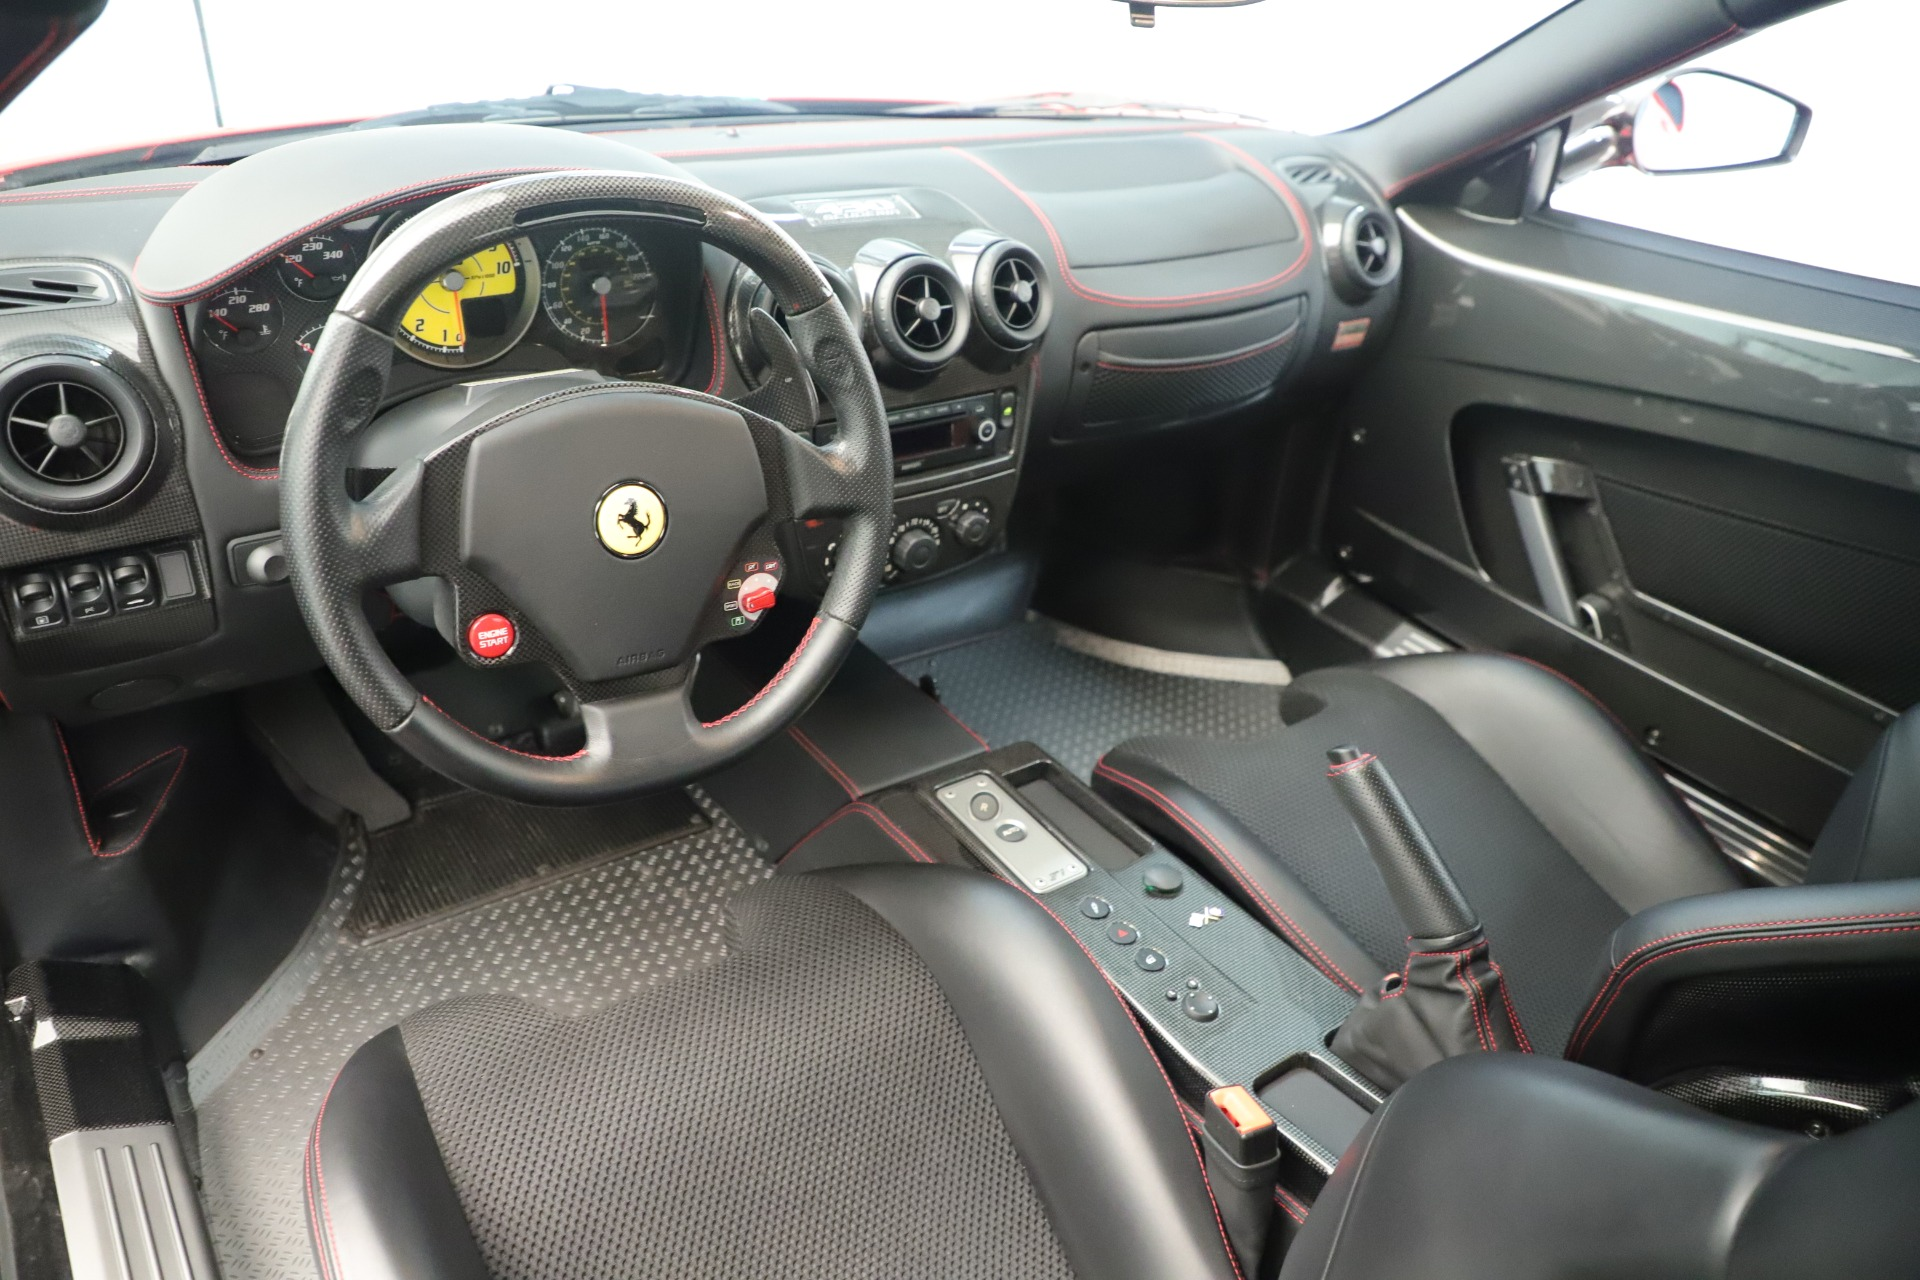 Used 2008 Ferrari F430 Scuderia For Sale In Greenwich, CT 3381_p14